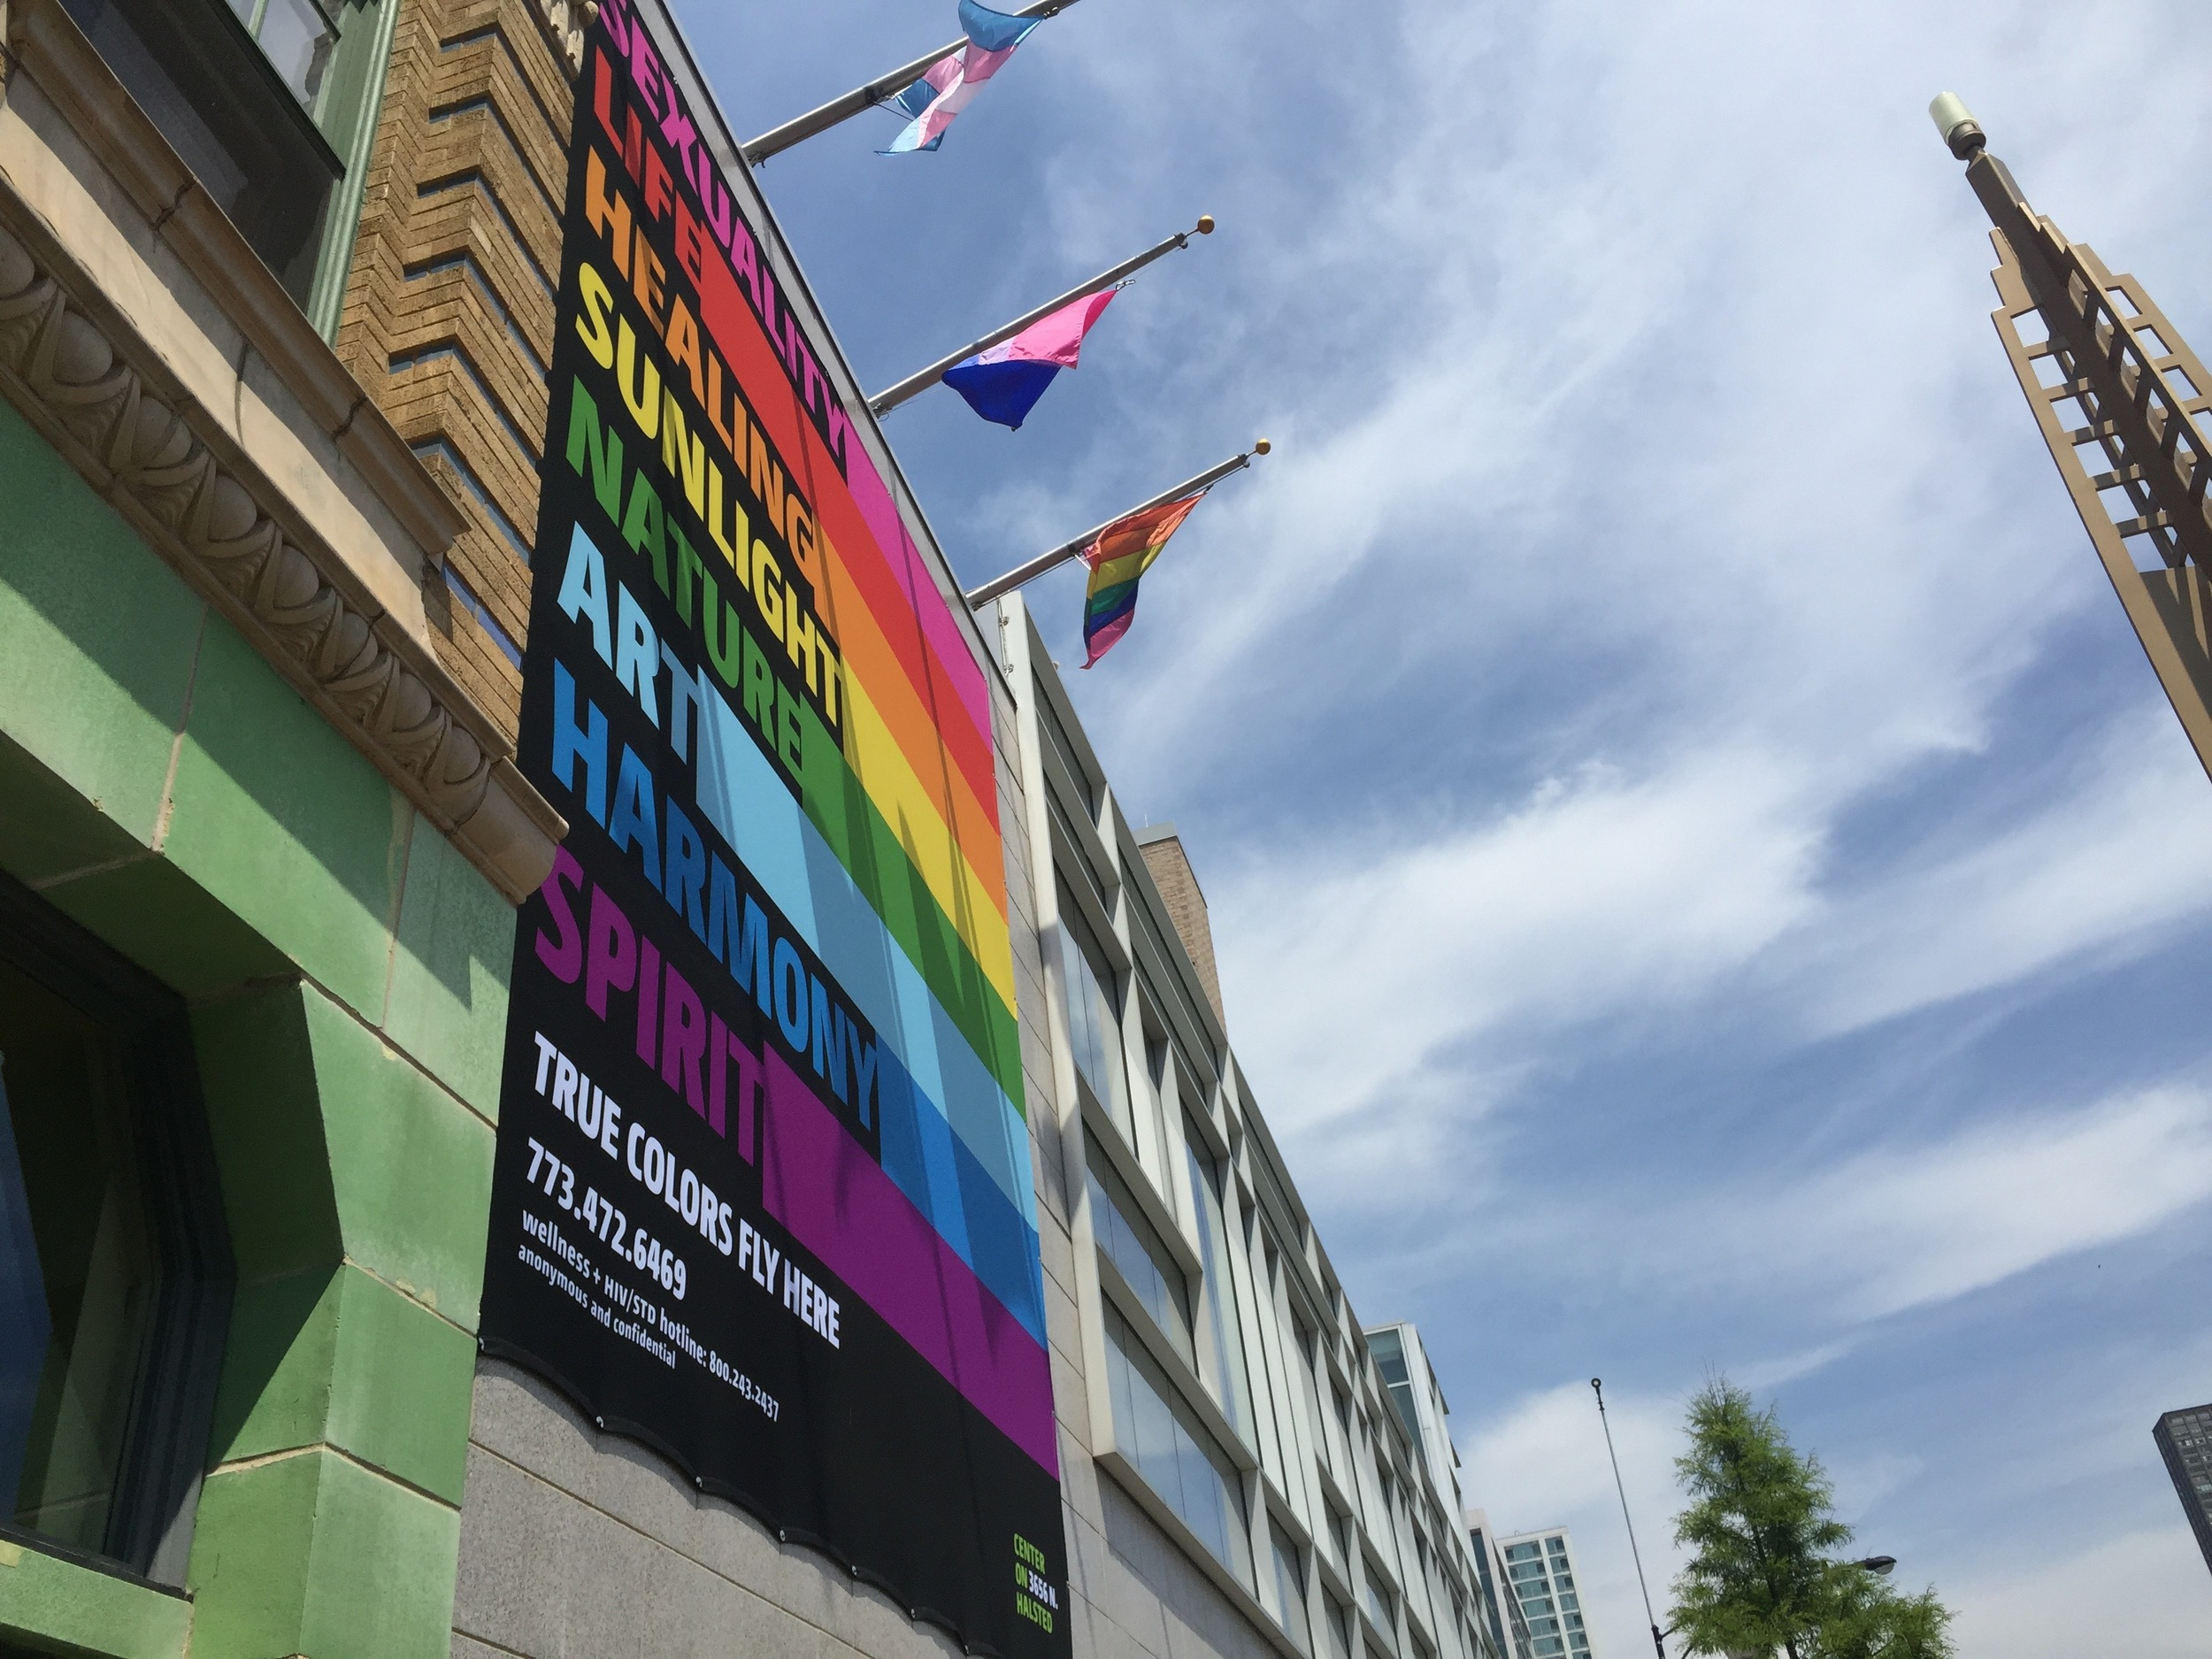 The Center is also launching an LGBTQ homeless youth initiative which will includes housing, outreach, and support for this underserved community. Caseworkers have already begun this exciting campaign. See The Rookery Project for more details.